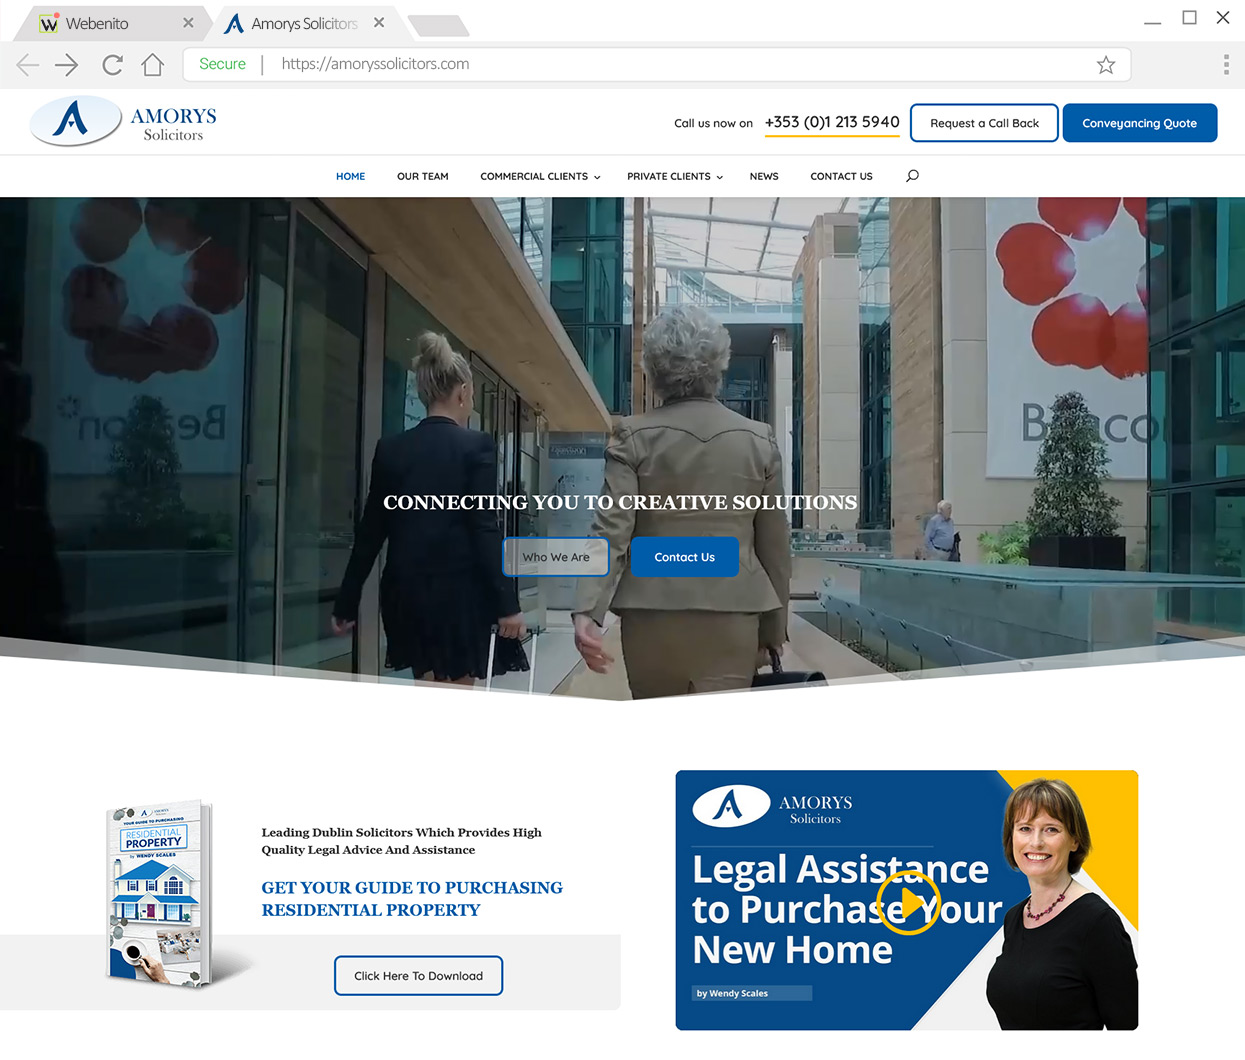 Webenito Case Study - Amorys Solicitors